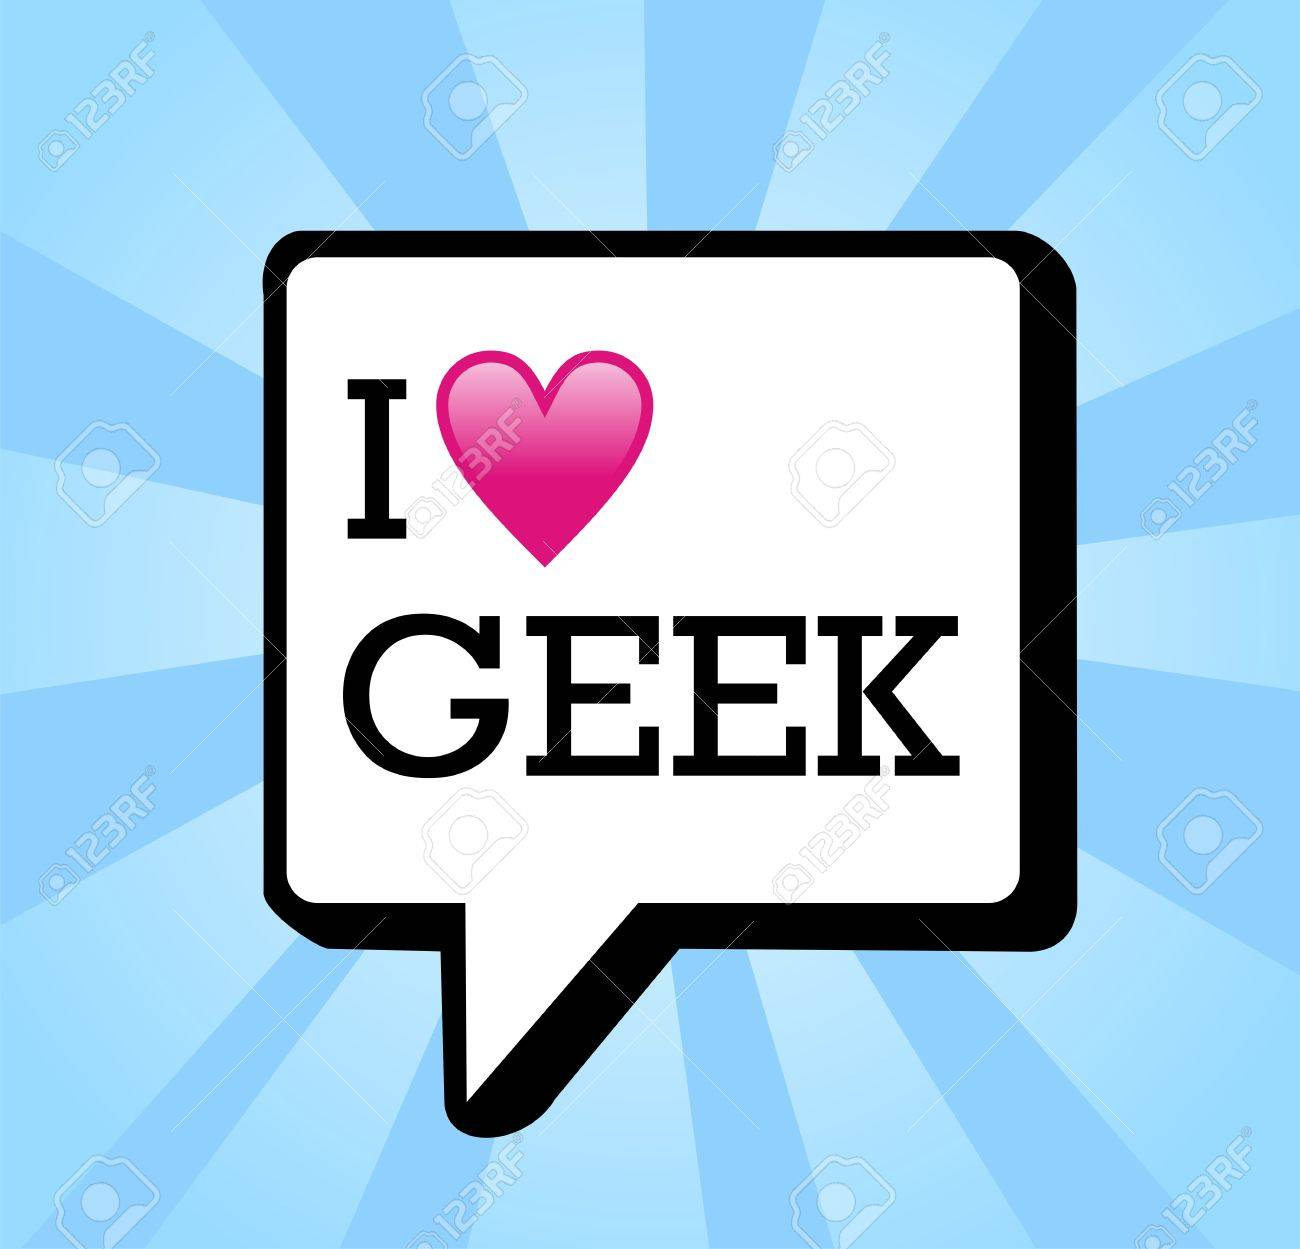 I love geek message in communication bubble background illustration. file layered for easy manipulation and custom coloring. Stock Vector - 13533779